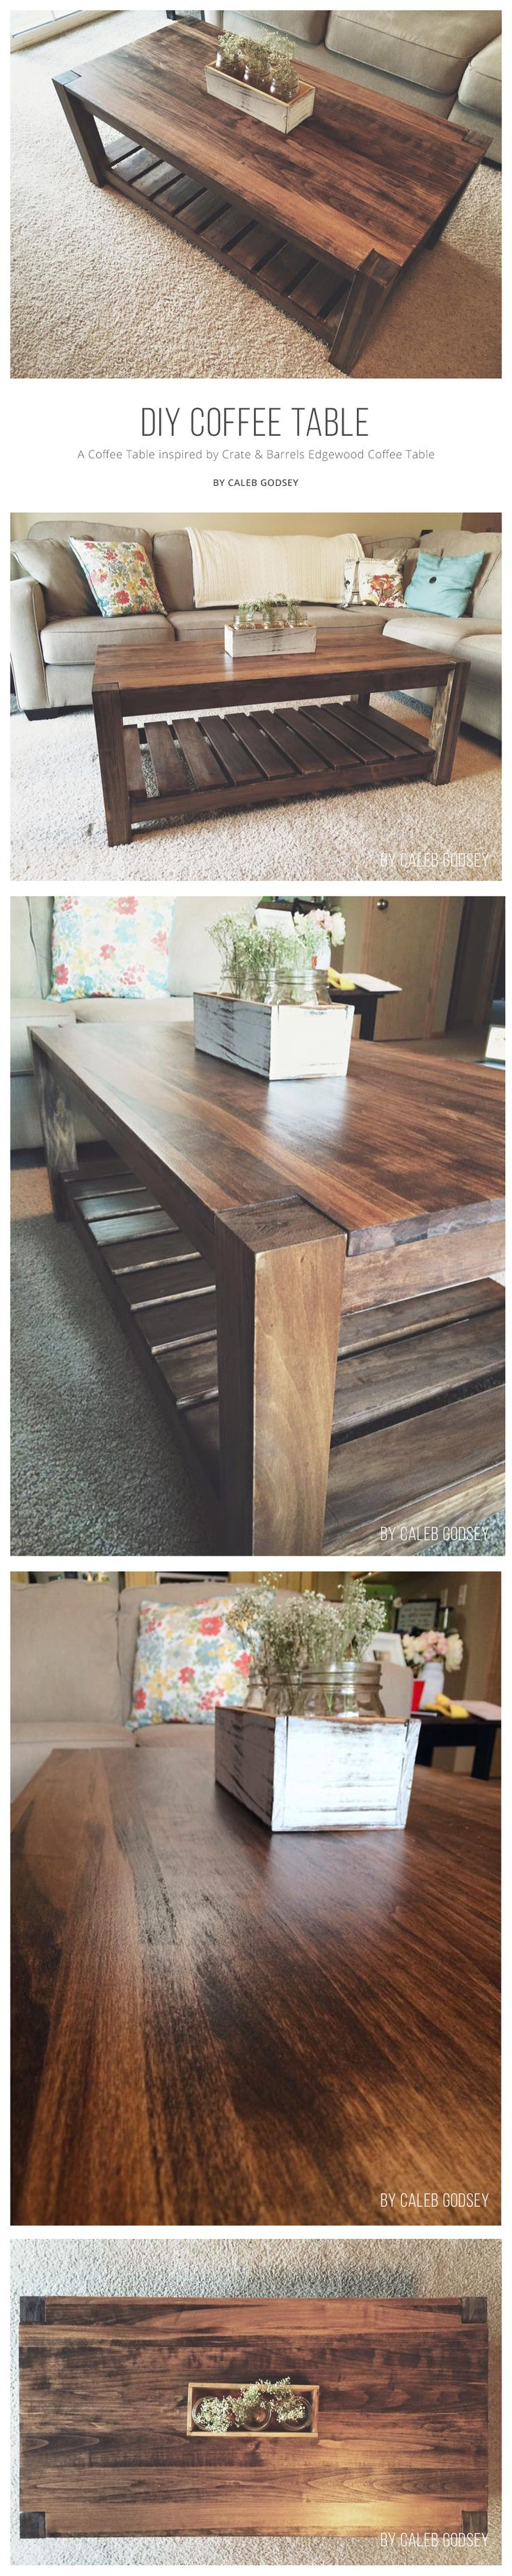 A beautiful aspen and pine diy coffee table inspired by Crate & Barrel's Edgewood Coffee Table.